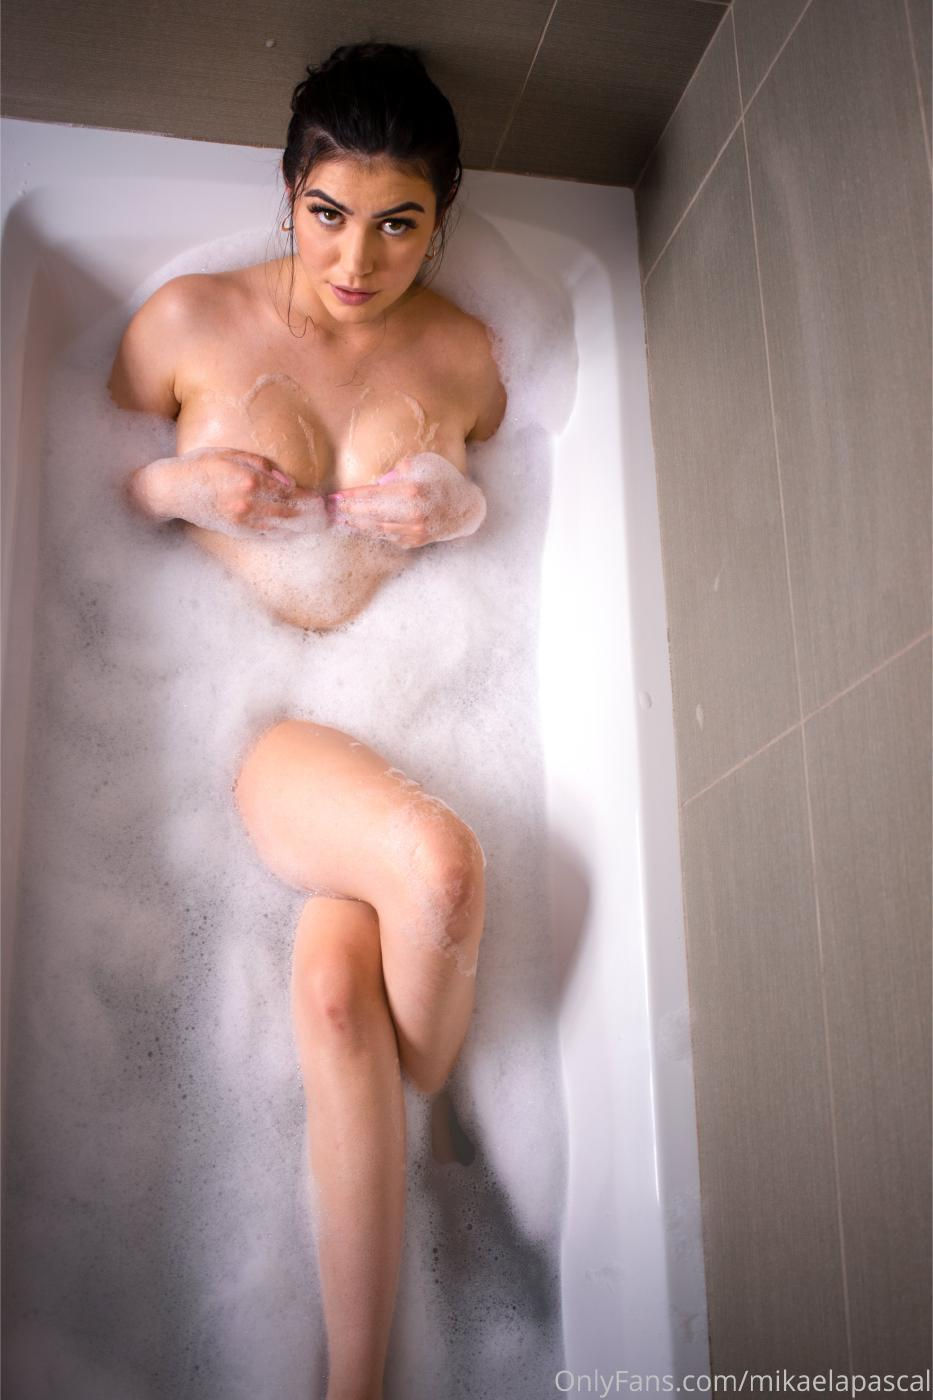 Mikaela Pascal Nude In Bath Onlyfans Set Leaked 0006